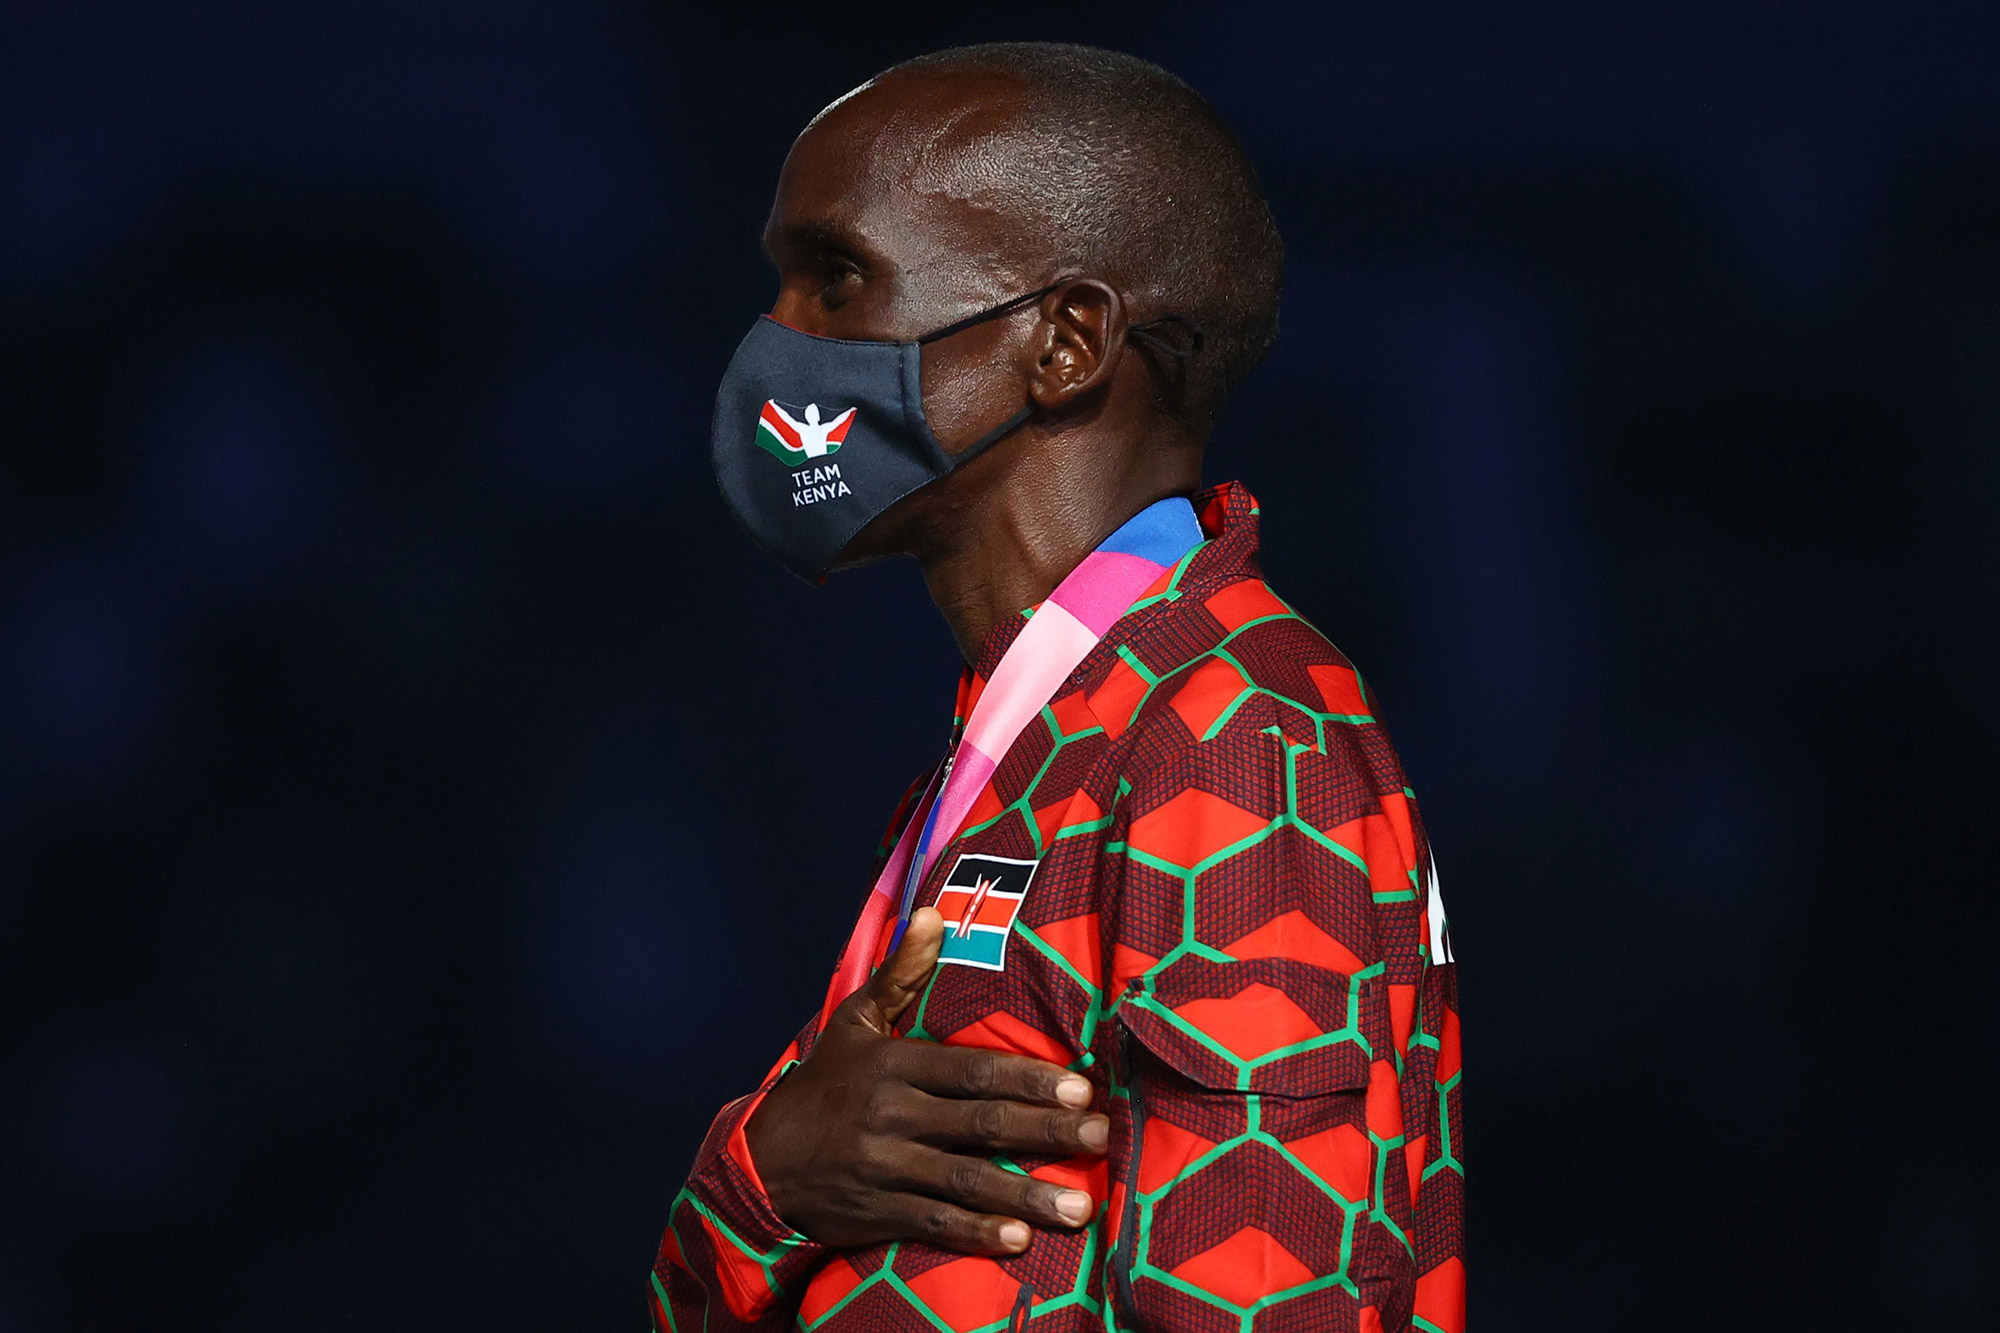 Kenya's Eliud Kipchoge, who won the gold medal in the marathon, listens as his country's National Anthem is played during his medal ceremony on August 8. The medal ceremonies for both the men's and women's marathon took place during the closing ceremony. And that meant two playings of the Kenyan National Anthem, as Kenya's Peres Jepchirchir won gold in the women's event.